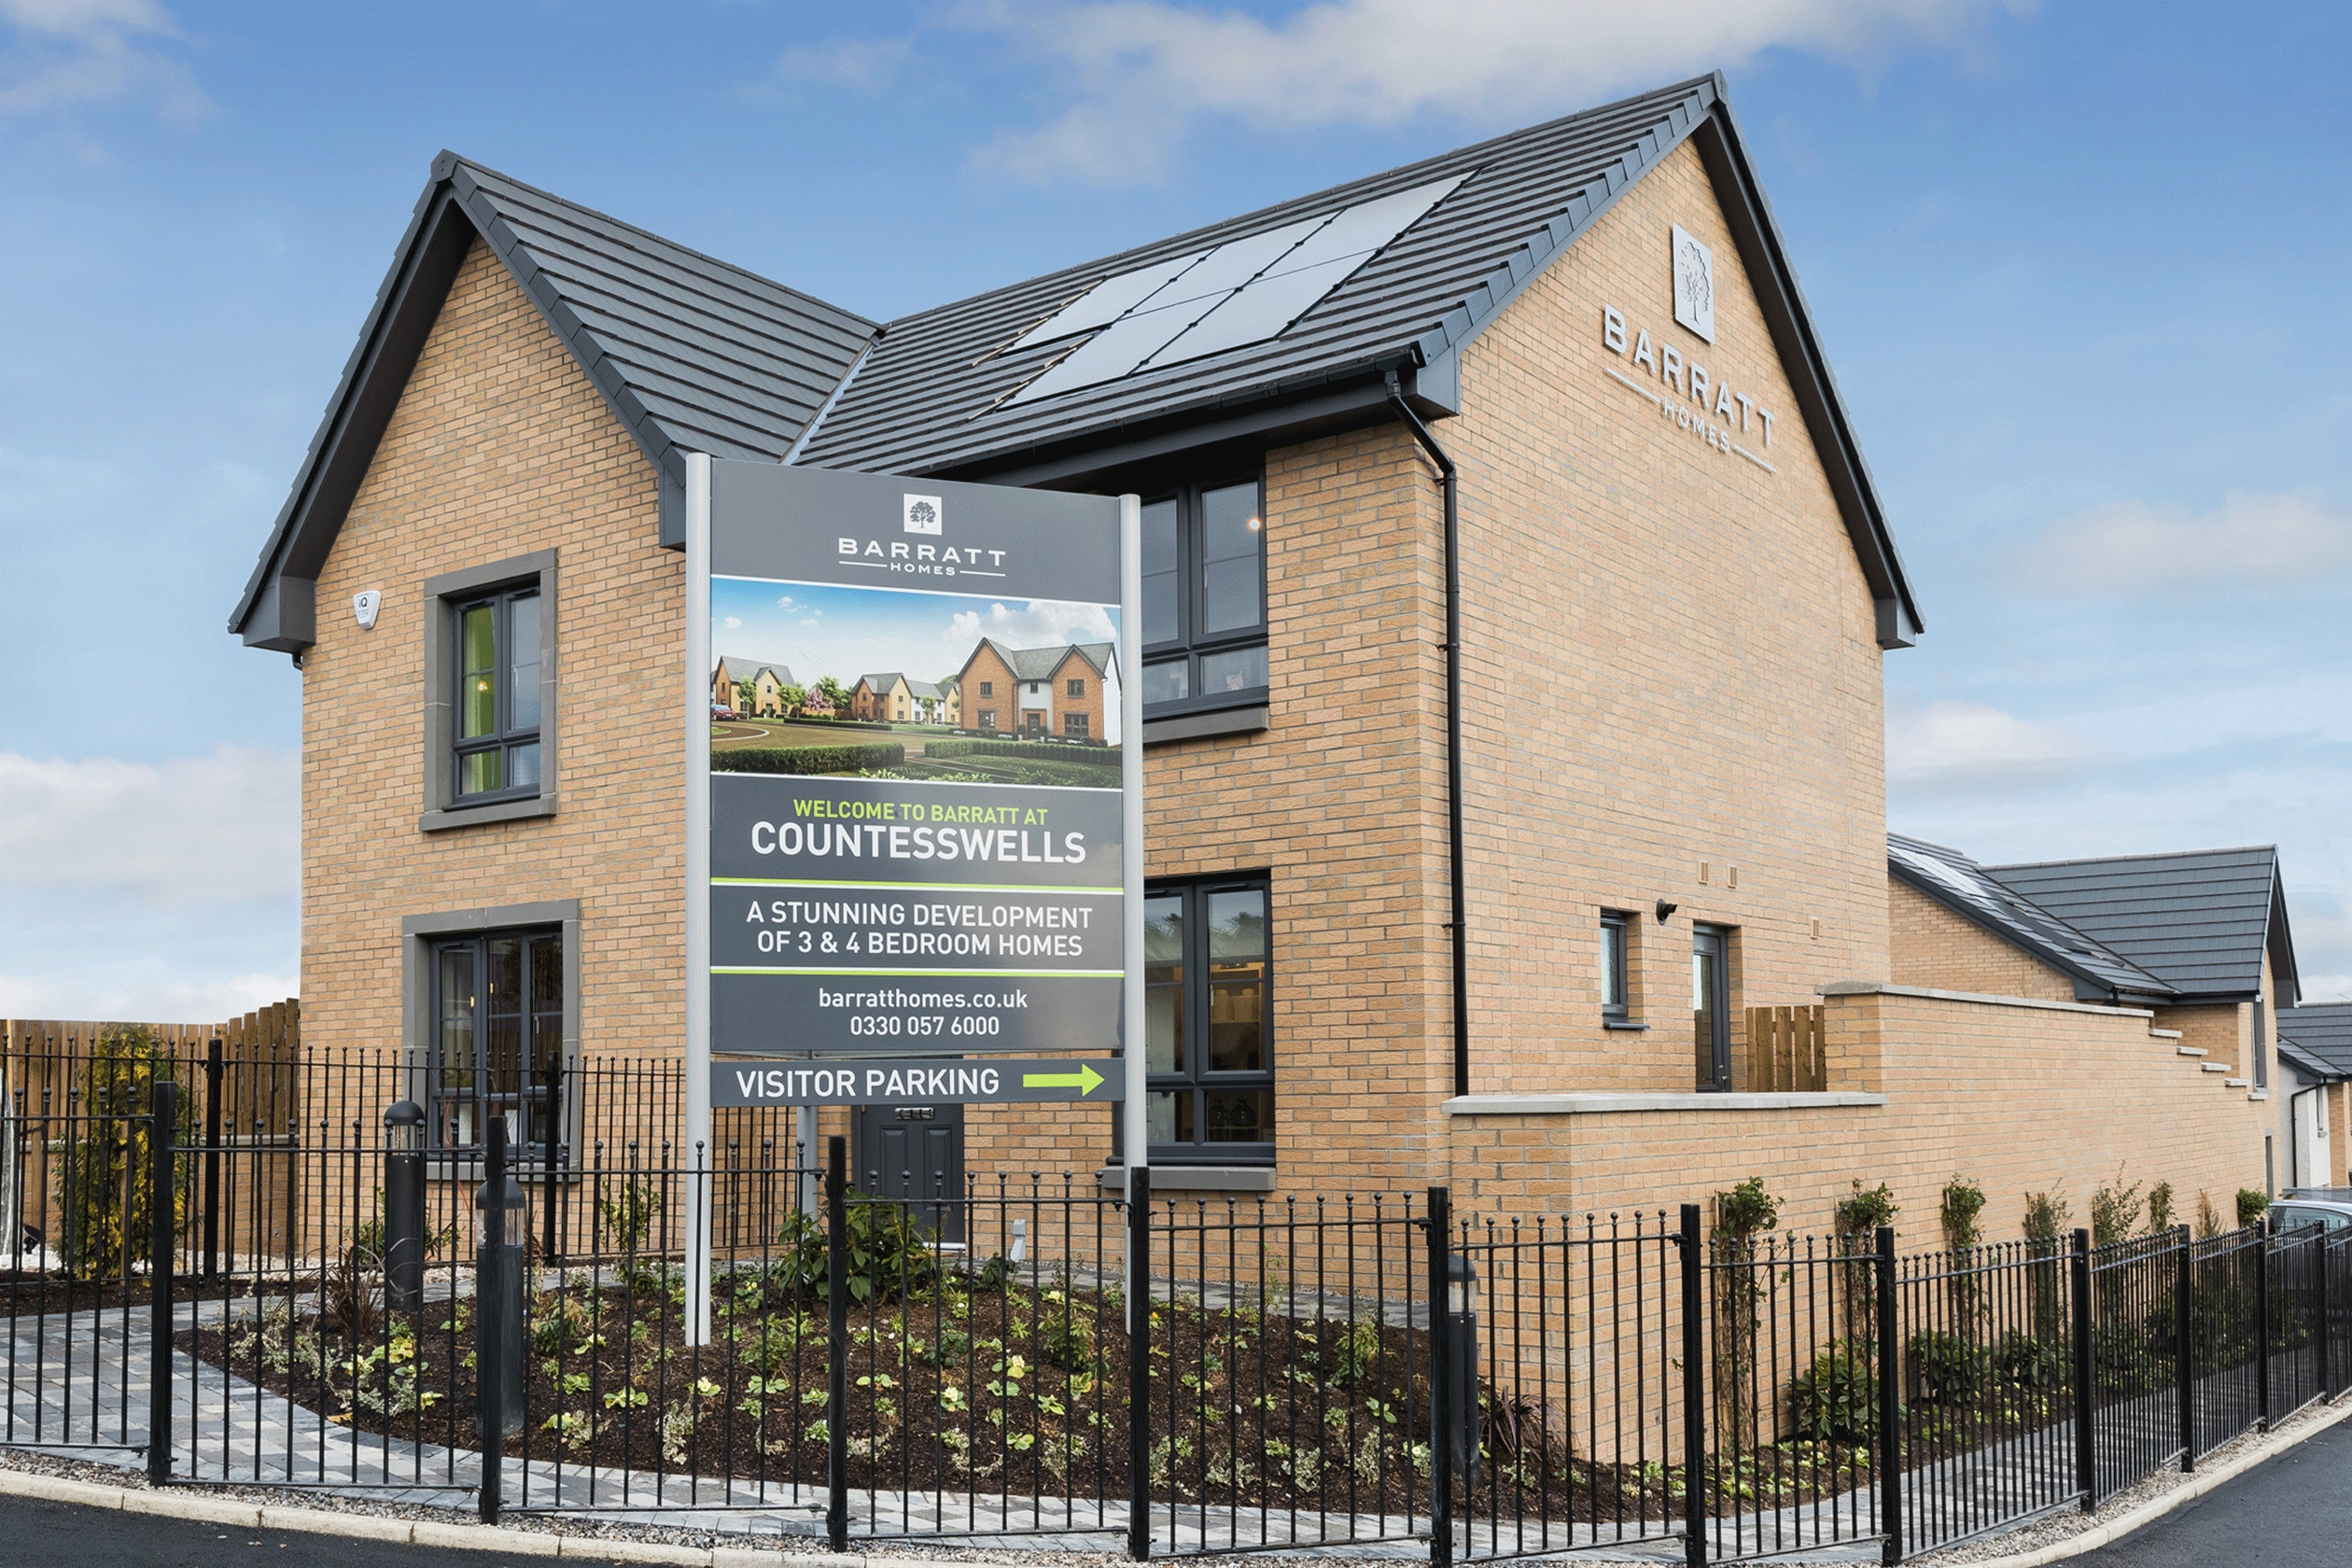 New Build Homes in Countesswells